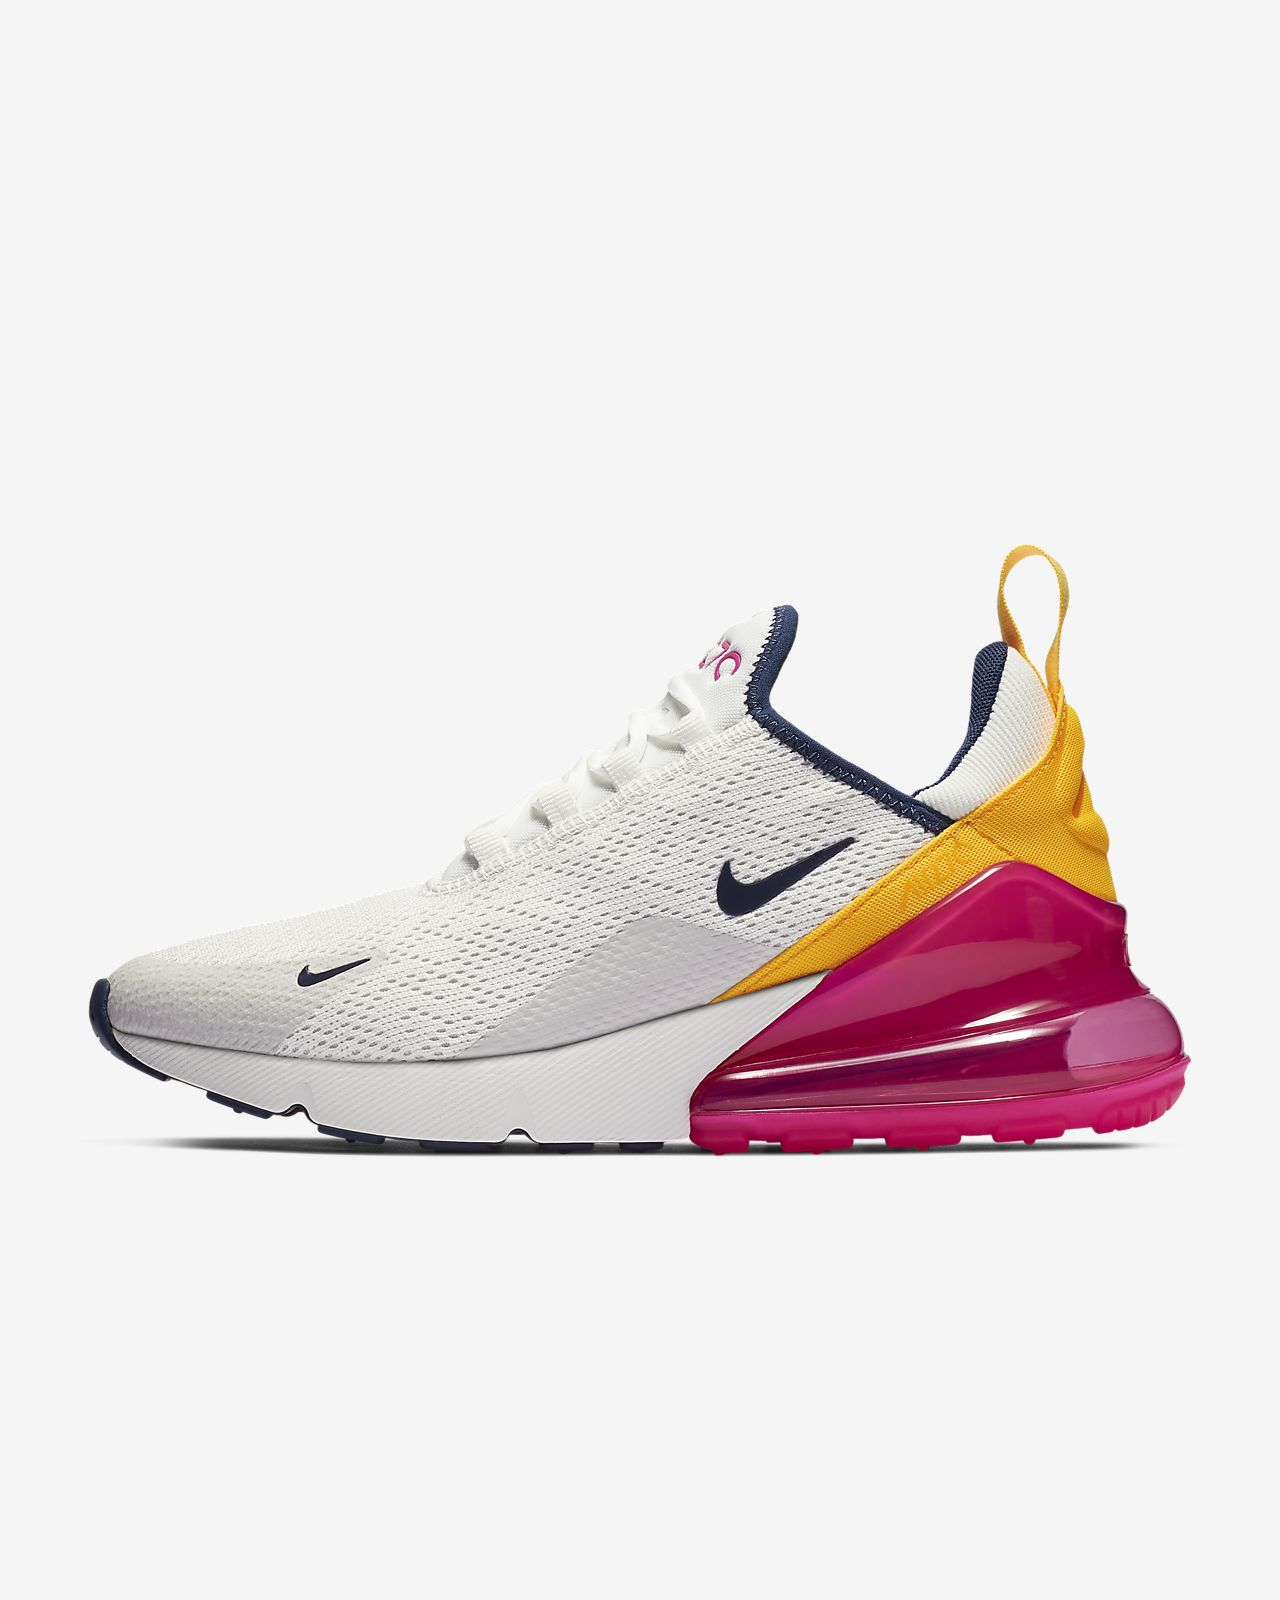 Nike Air Max 270 Premium Women's Shoe